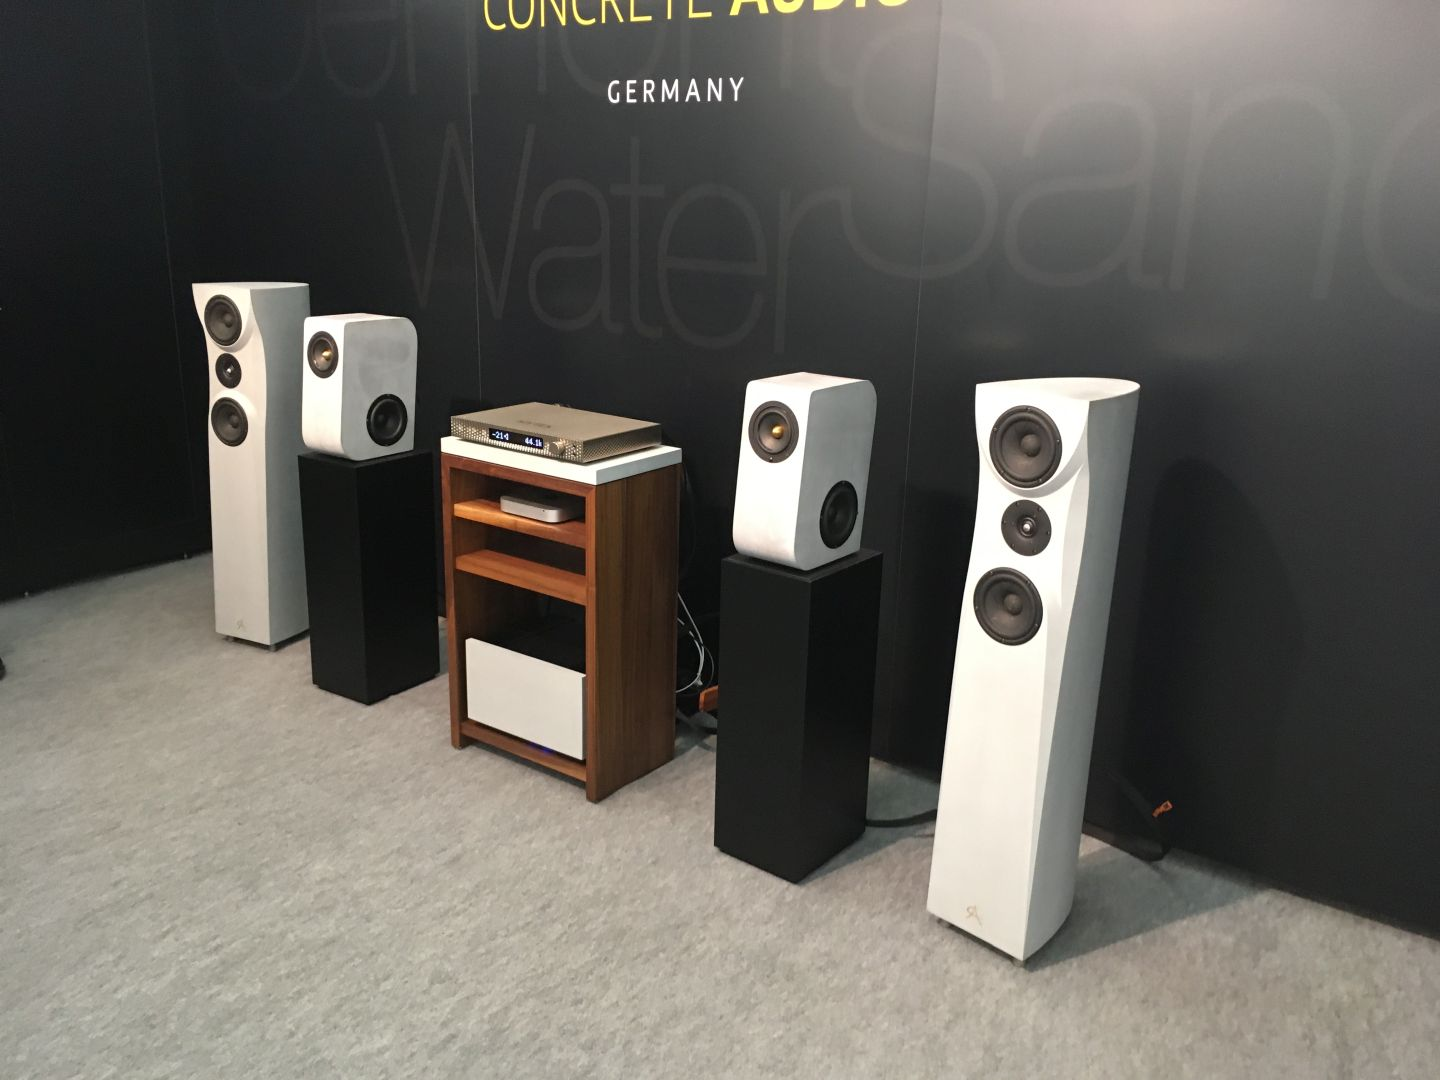 ConcreteAudio_High End 2017_001